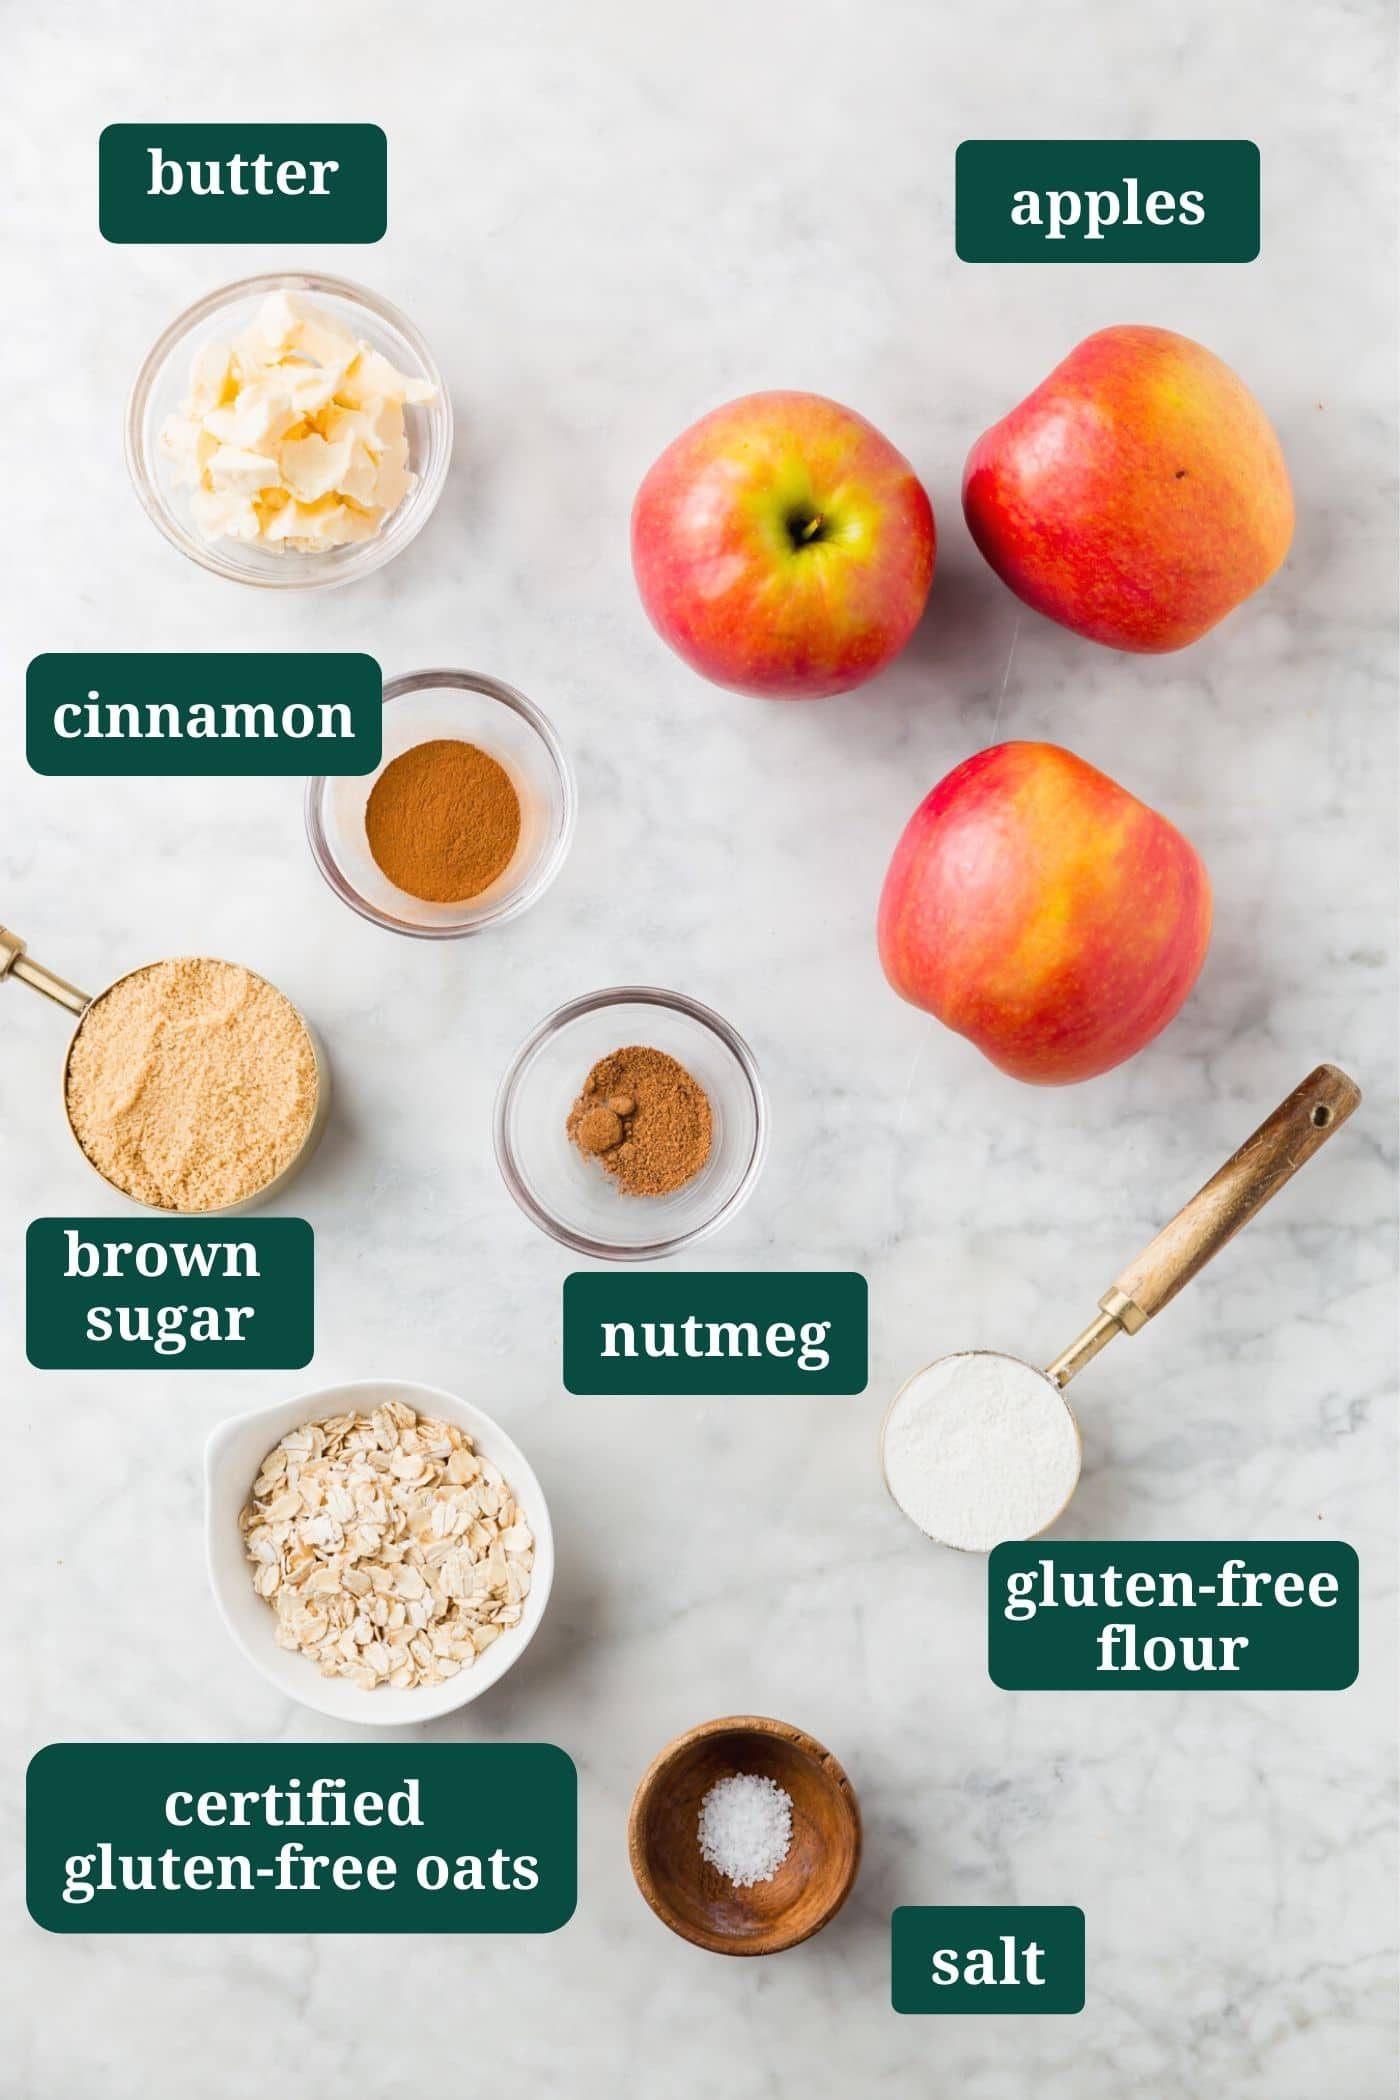 An overhead shot of ingredients labeled to make gluten-free baked stuffed apples.